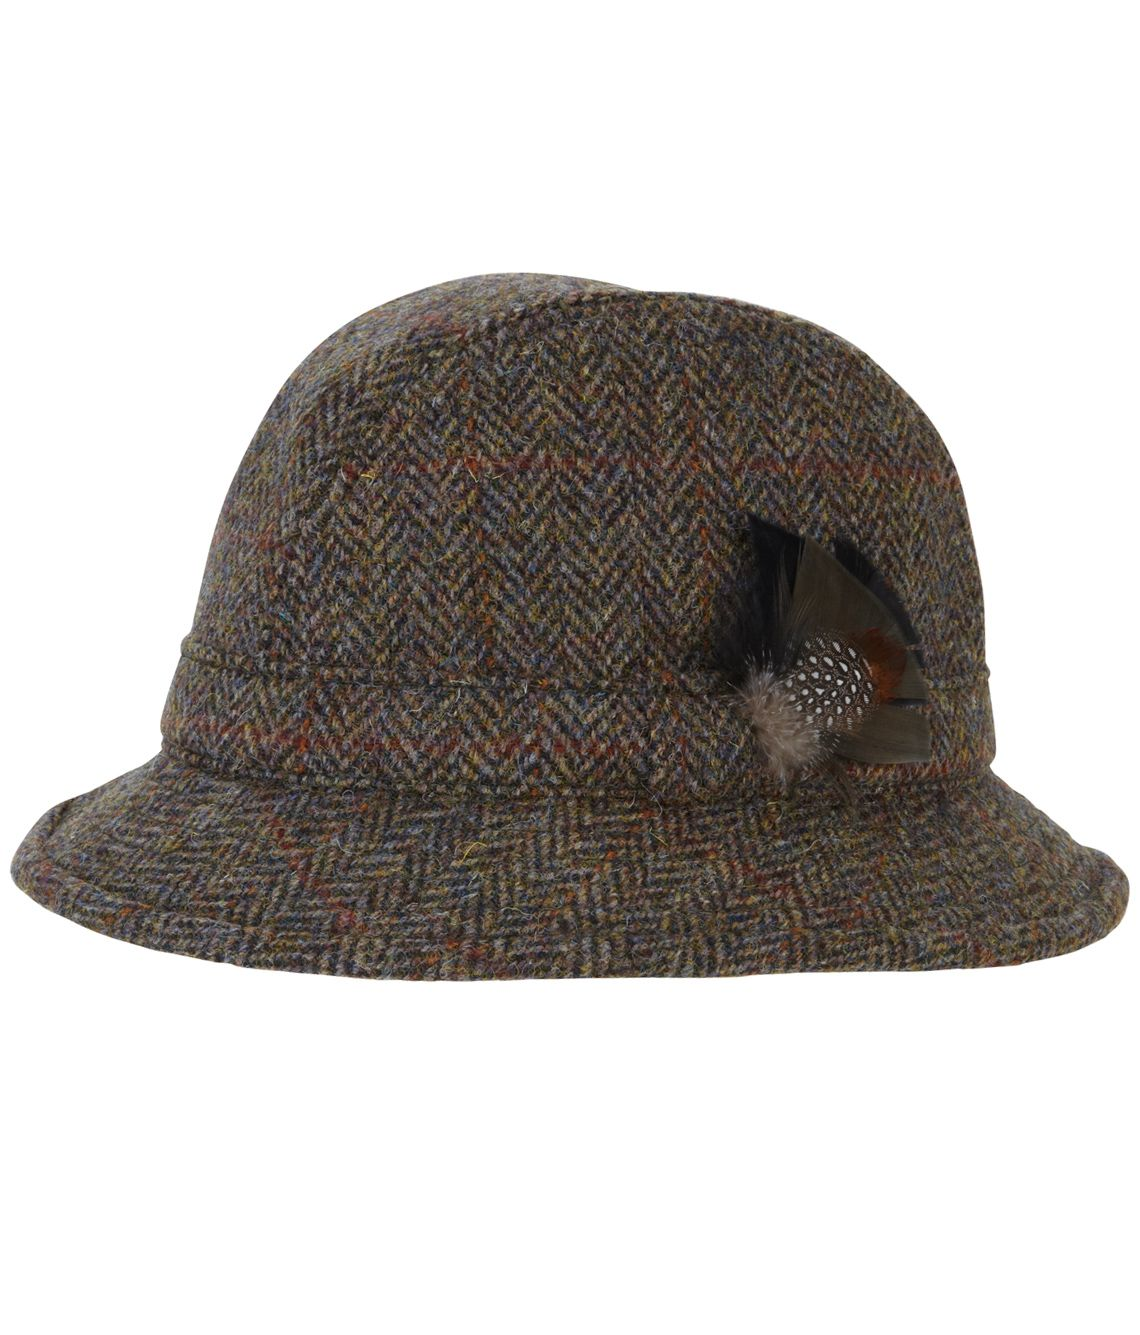 Viyella Harris Tweed Trilby Hats Gloves And Scarves Austin Reed 25 Austin Reed Trilby Hat Mens Fashion Wedding